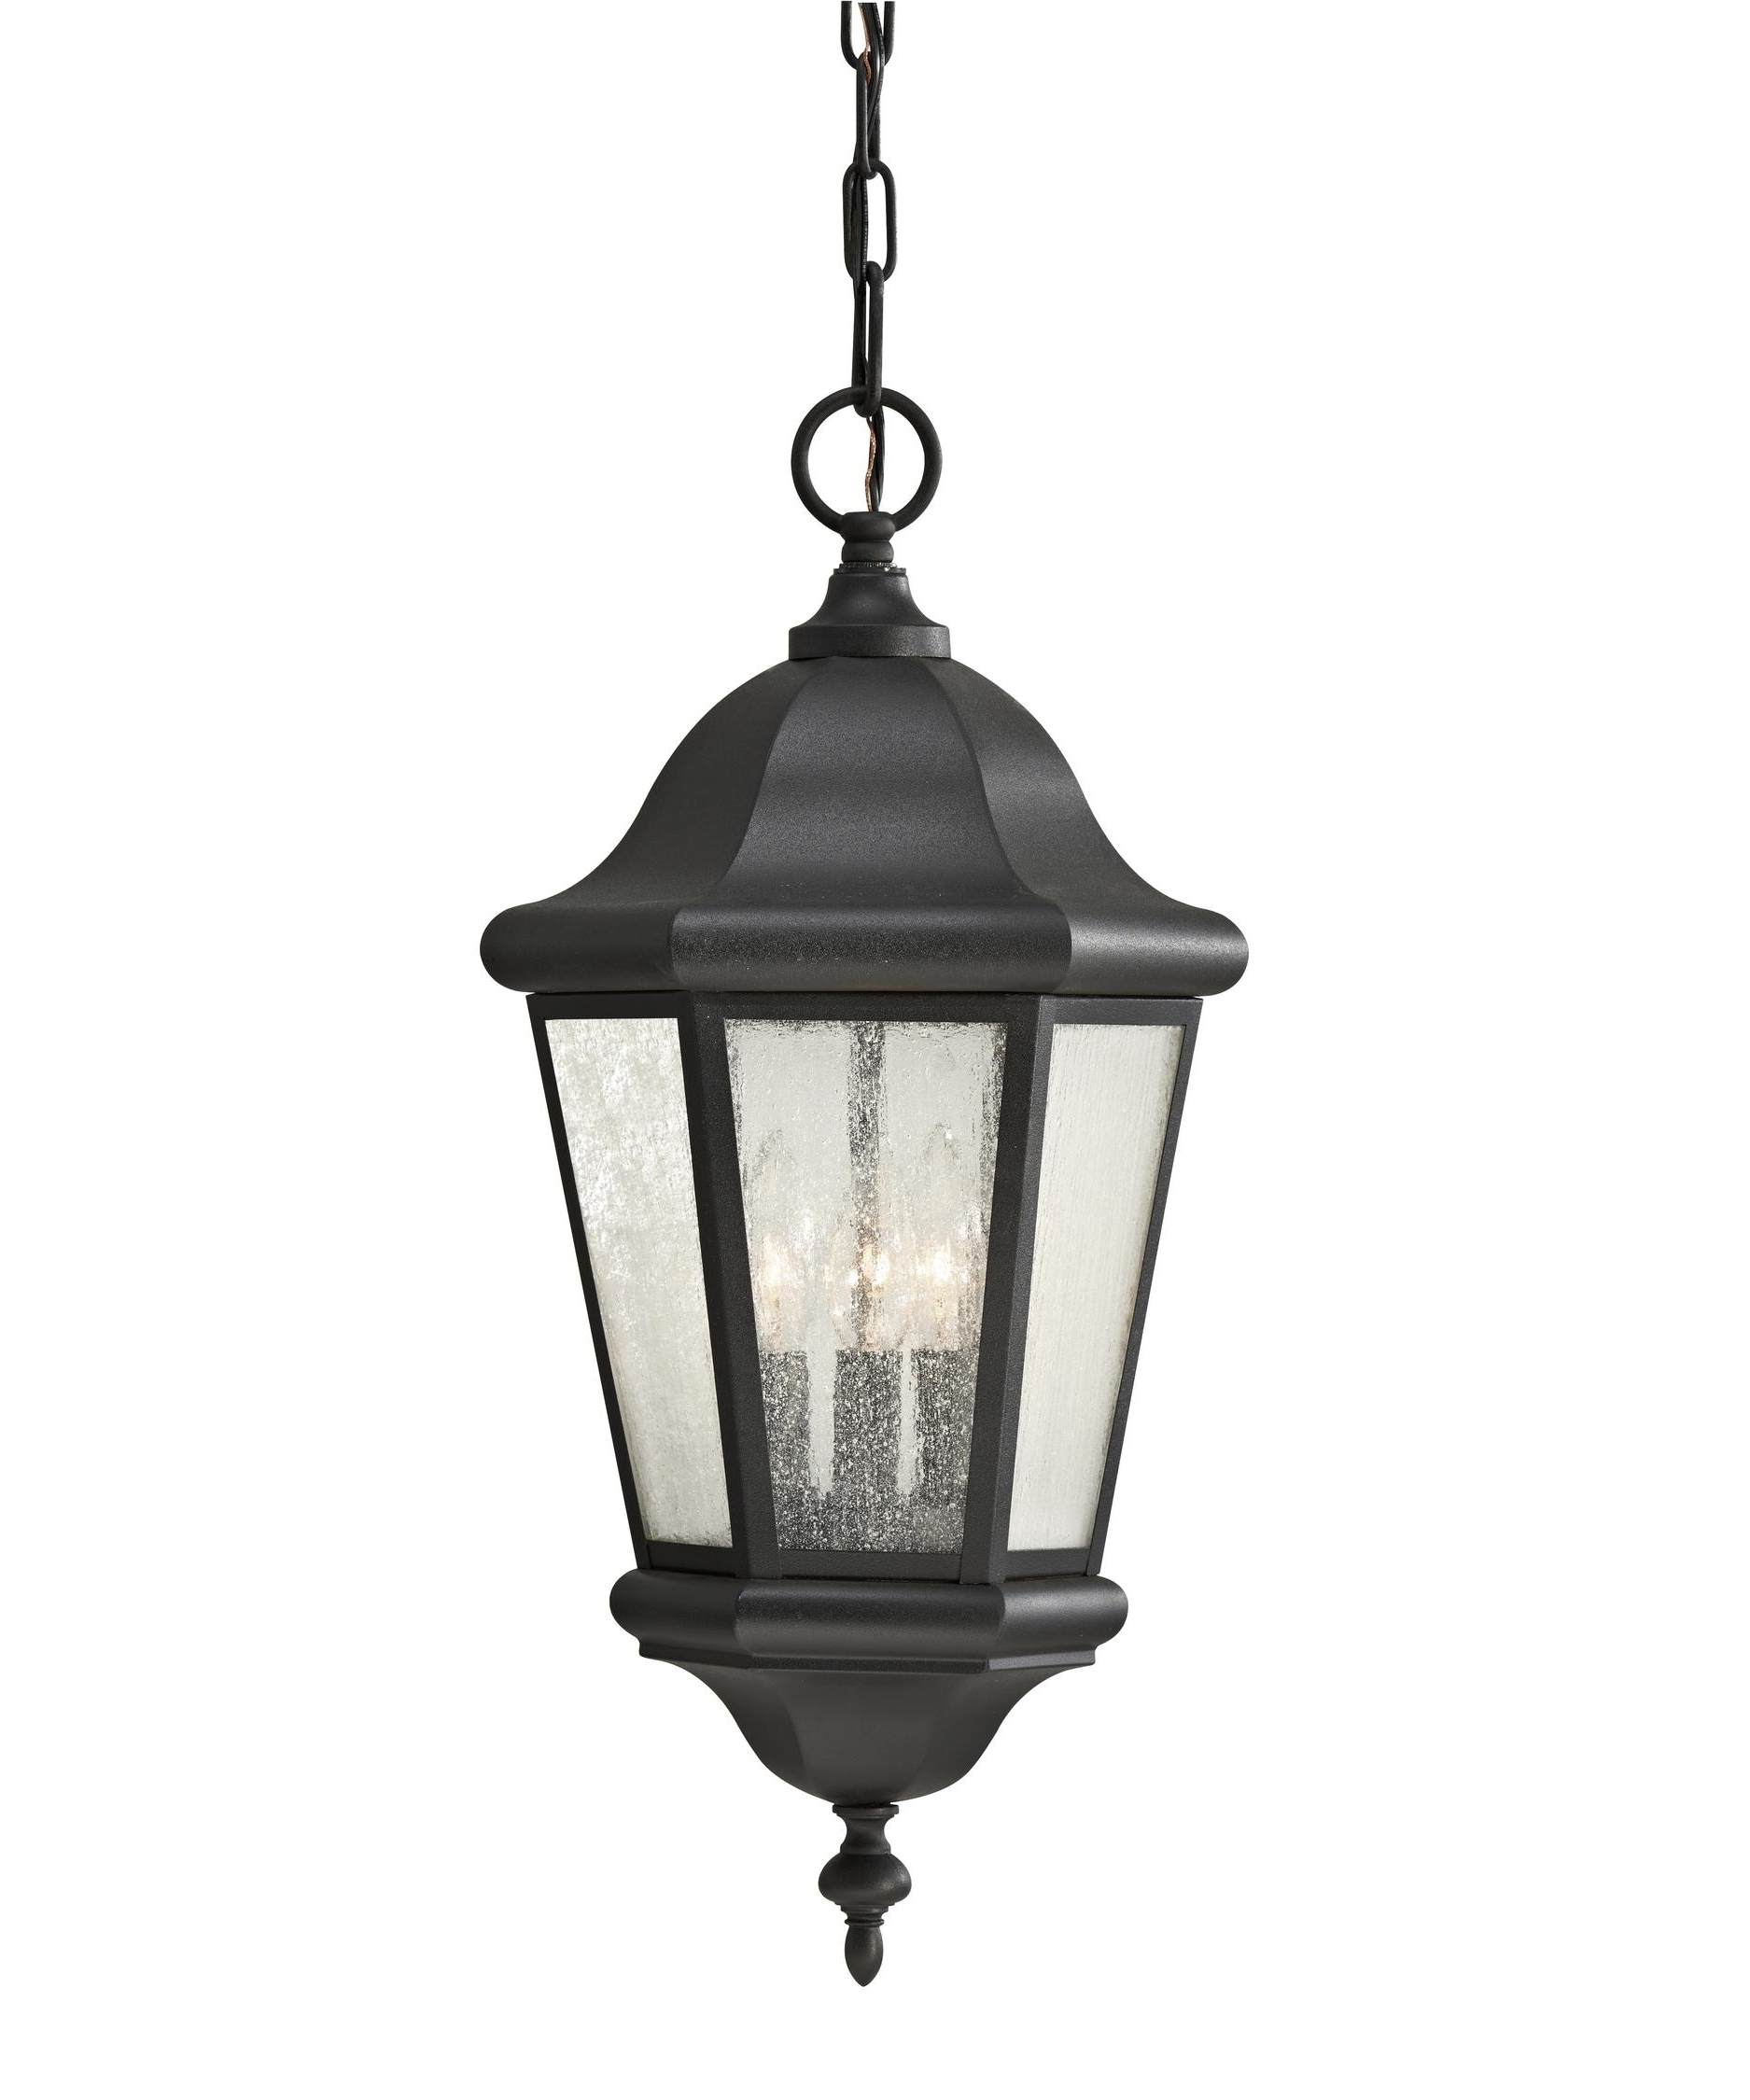 Outdoor : Stunning Outdoor Hanging Lantern Hampton Bay Hanging For Most Up To Date Outdoor Hanging Oil Lanterns (View 11 of 20)